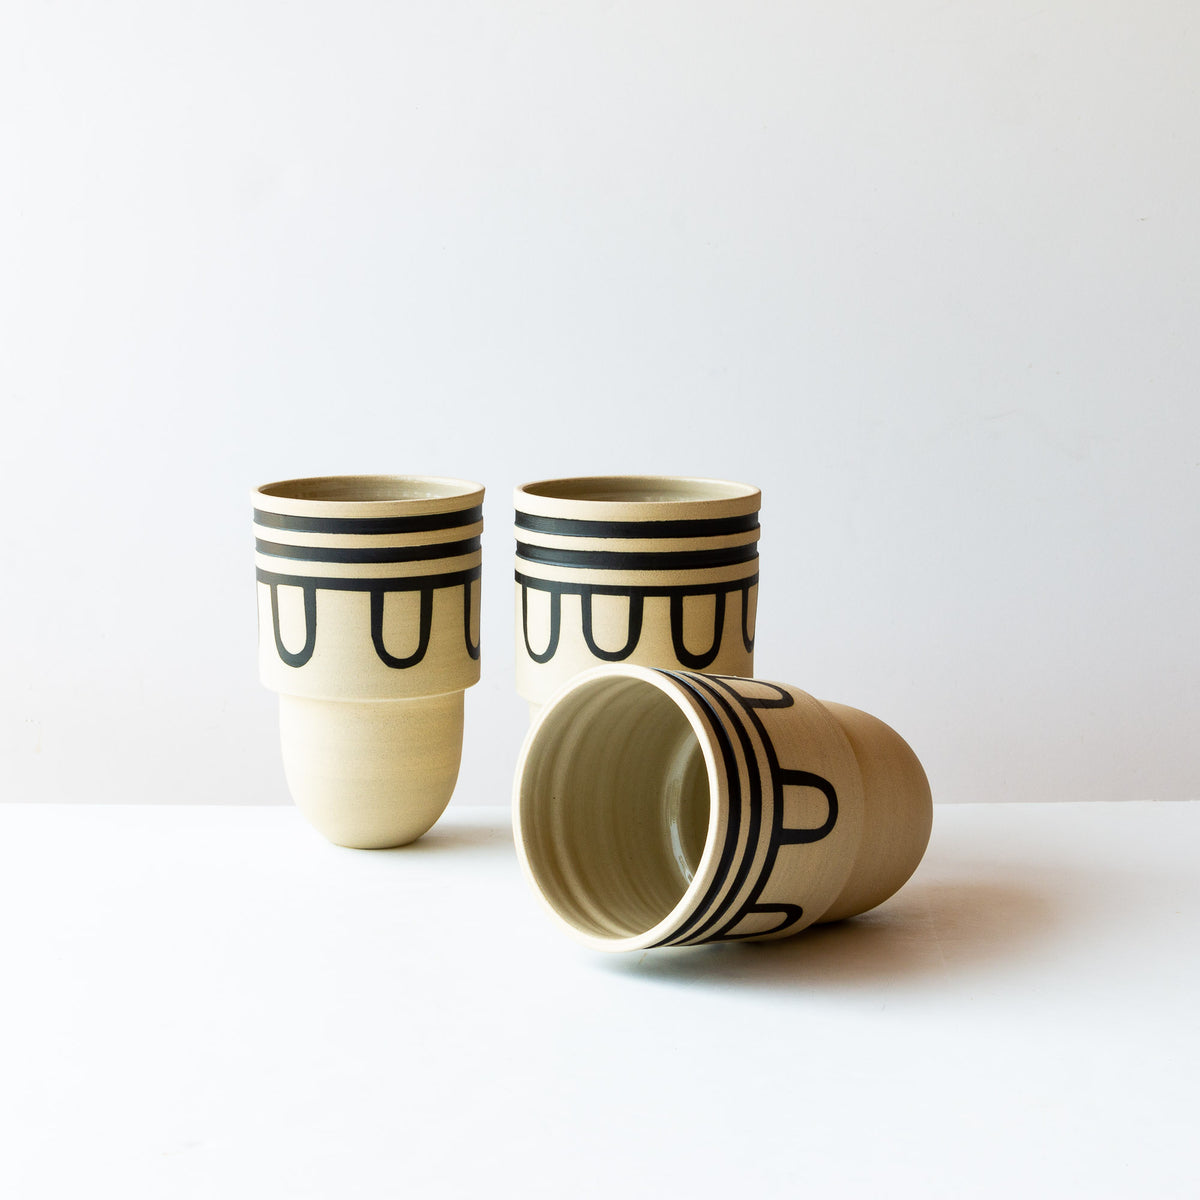 Auguste #4 - Three Handmade & Hand Painted Decorative Stoneware Vessels - Sold by Chic & Basta